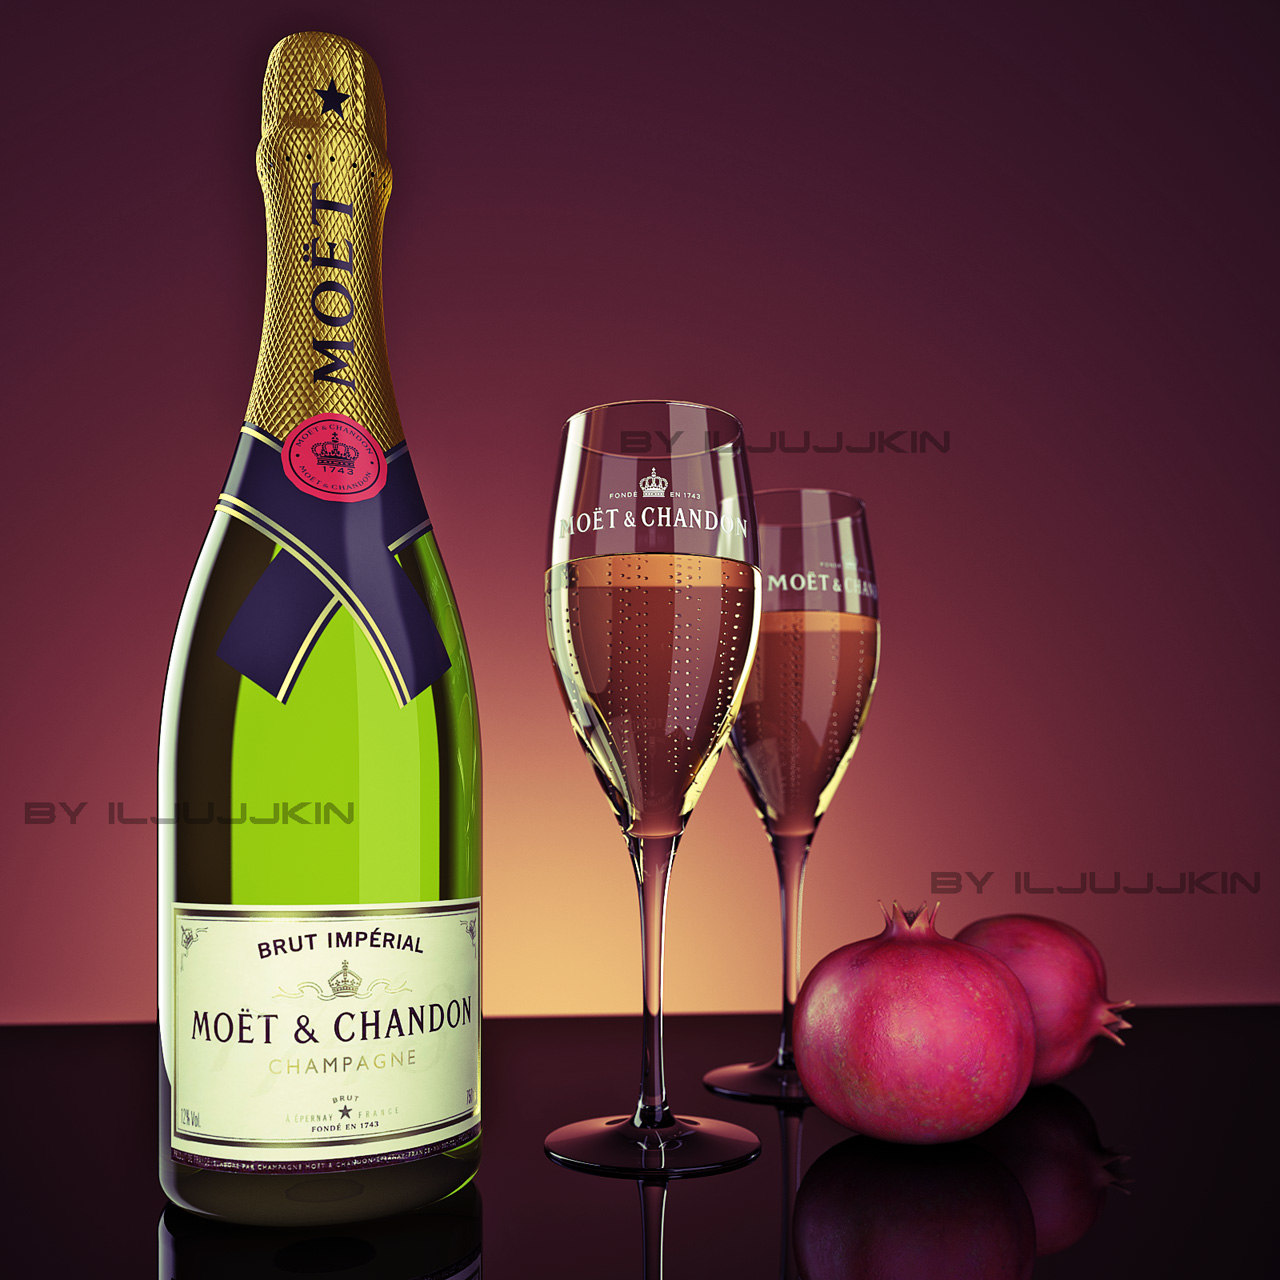 Champagne Moet Chandon 2